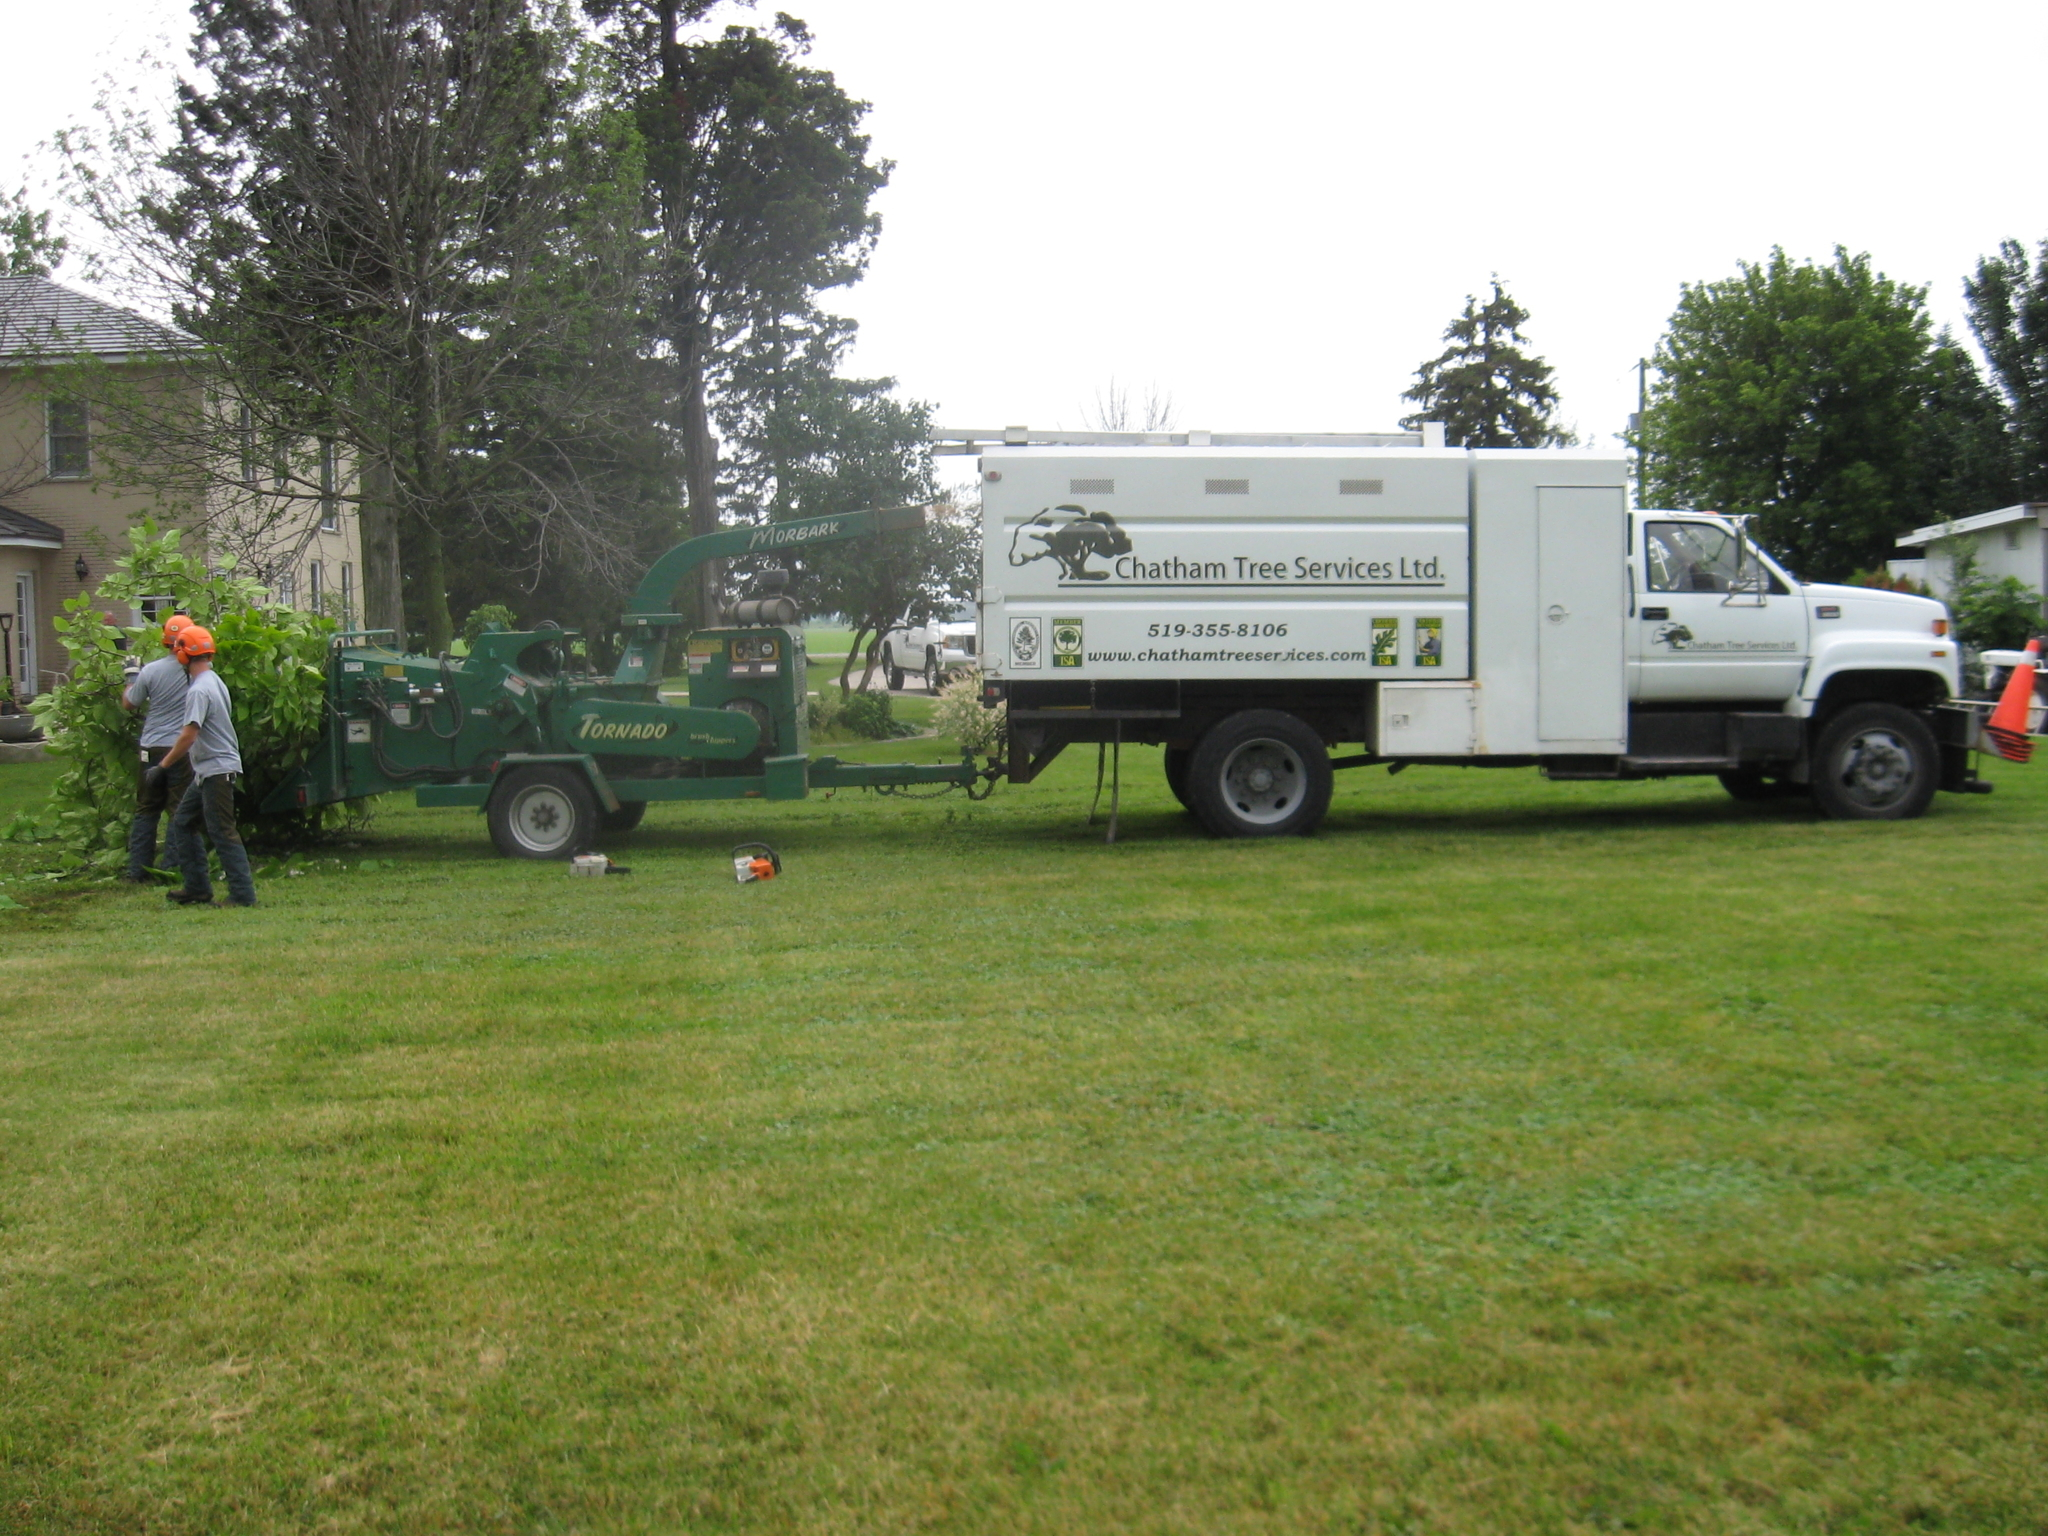 Chatham Tree Services Ltd in Chatham